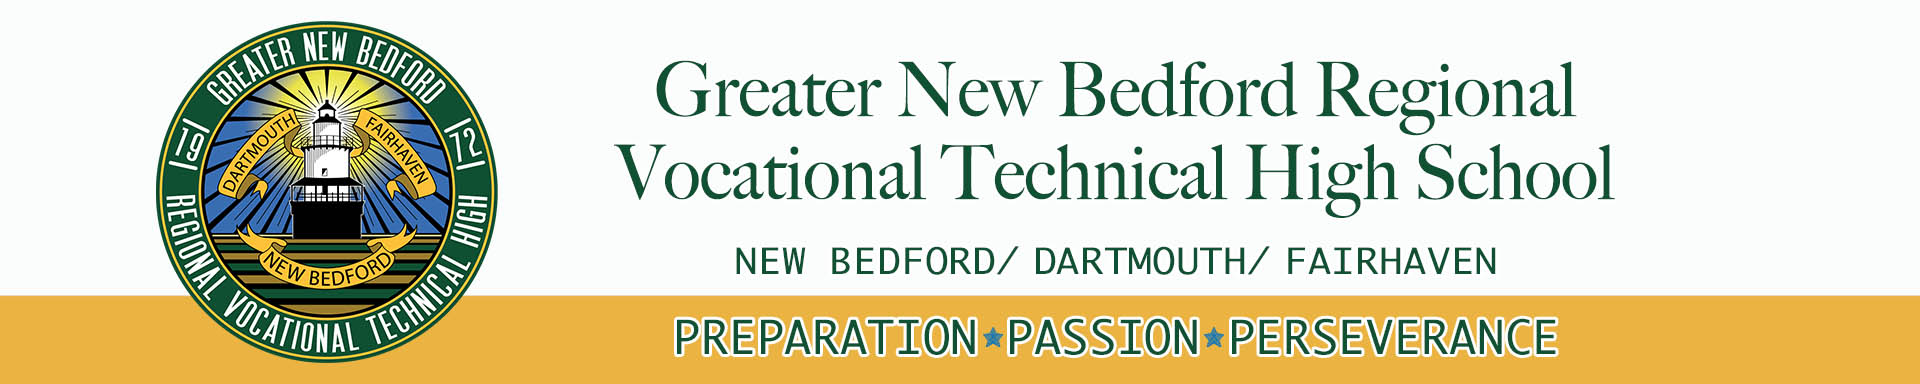 2021 header image with school's name and motto